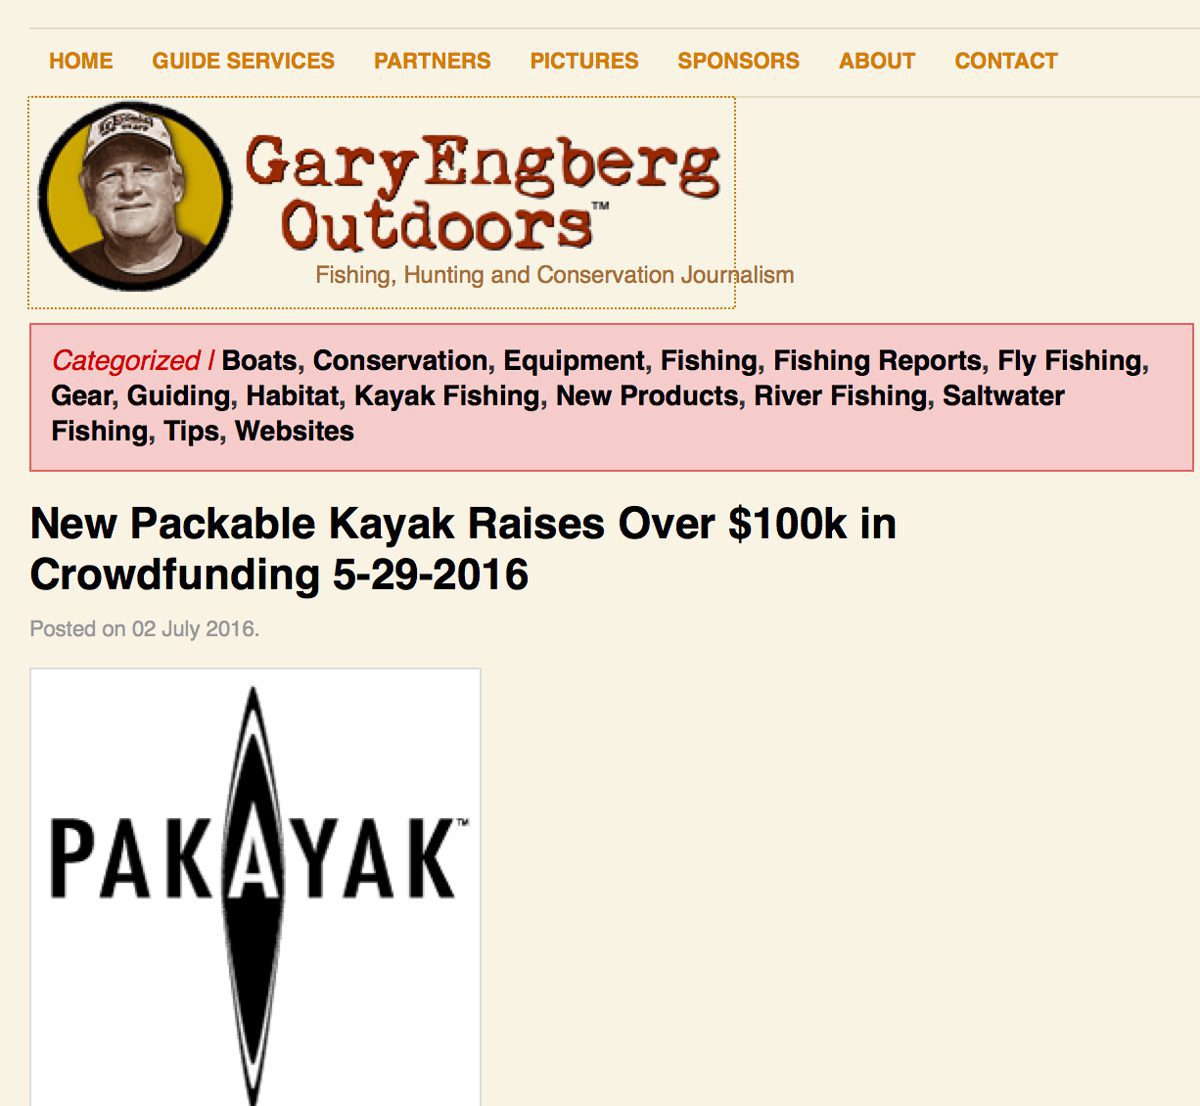 Gary Engberg Outdoors